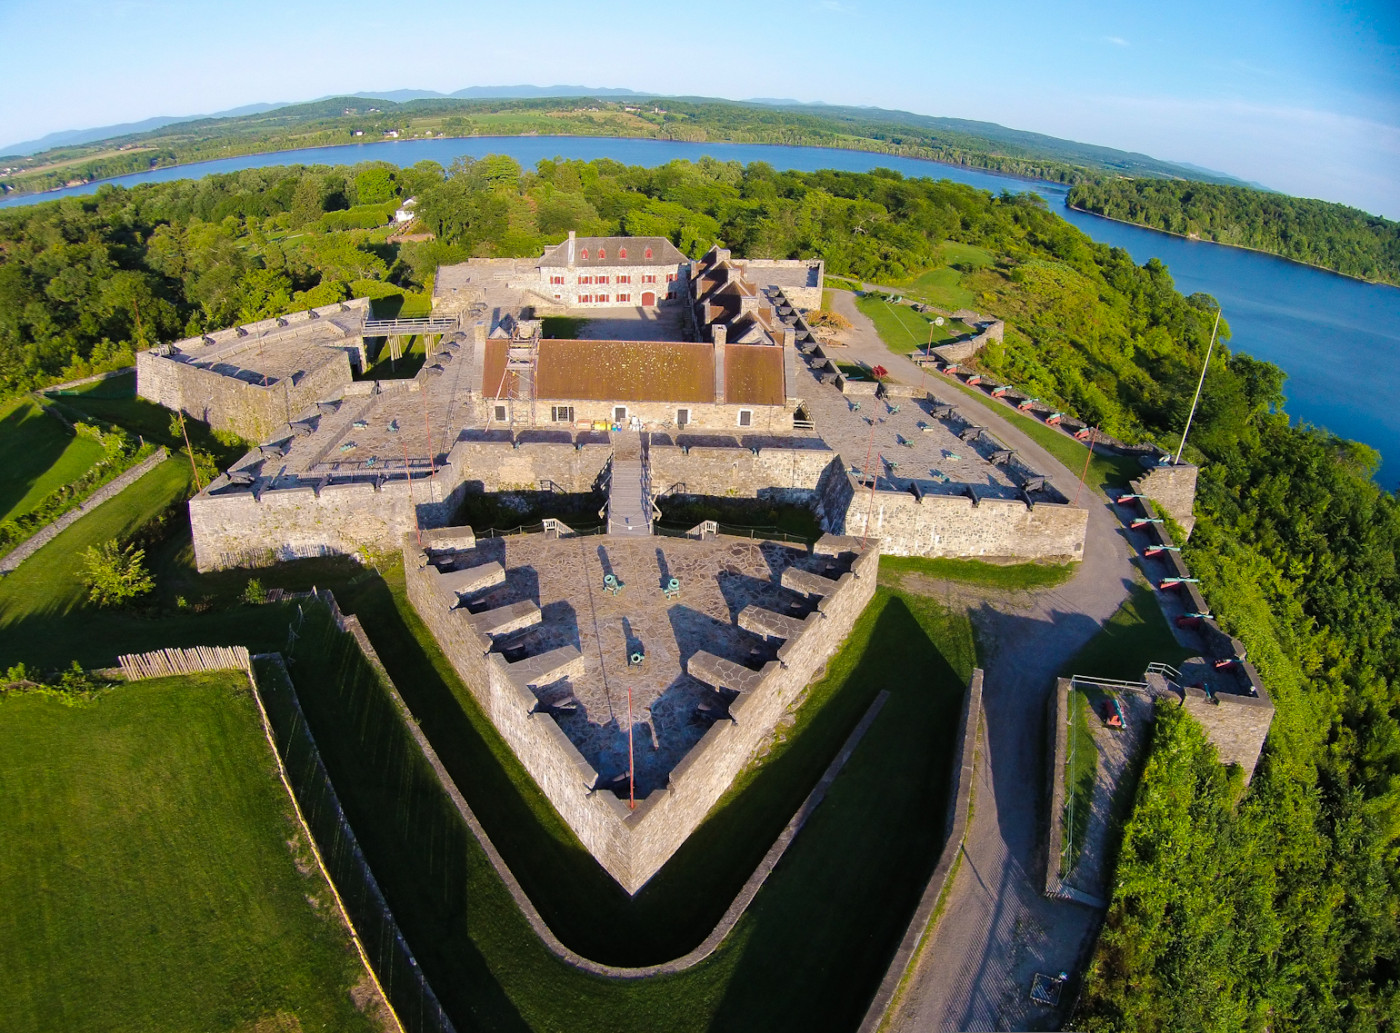 AARCH Tour: Fort Ticonderoga: Past, Present & Future